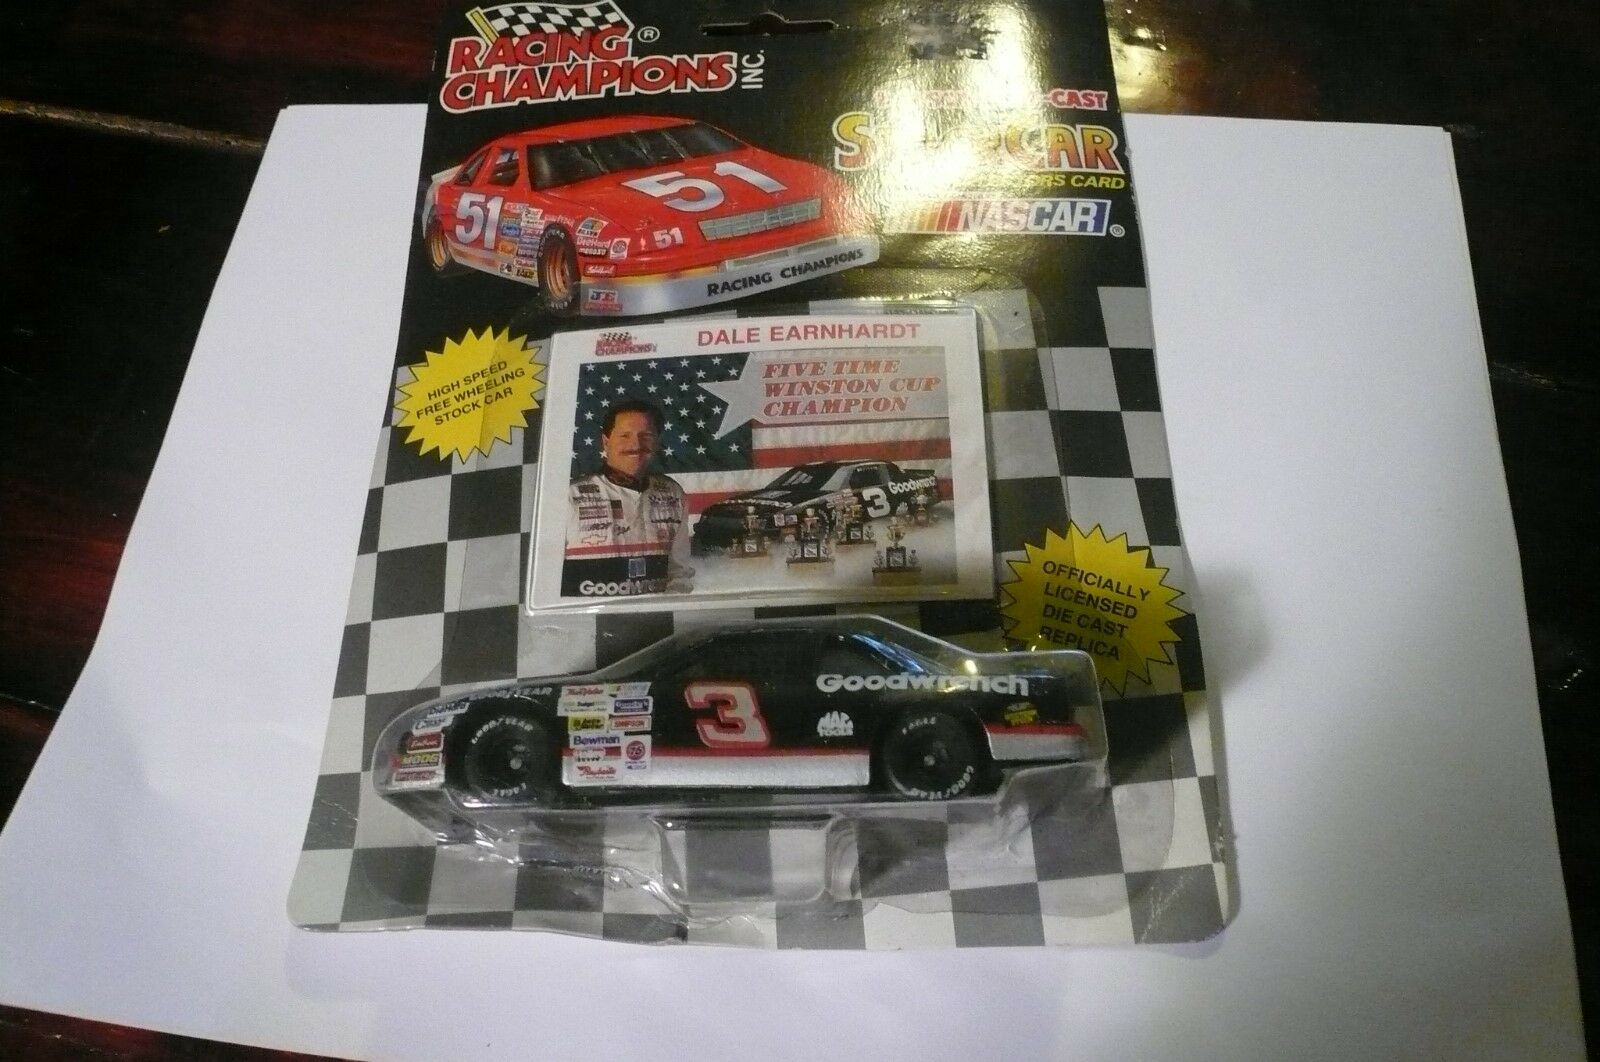 NASCAR--Racing Champions--Dale Earnhardt (1 43 Scale) 1992